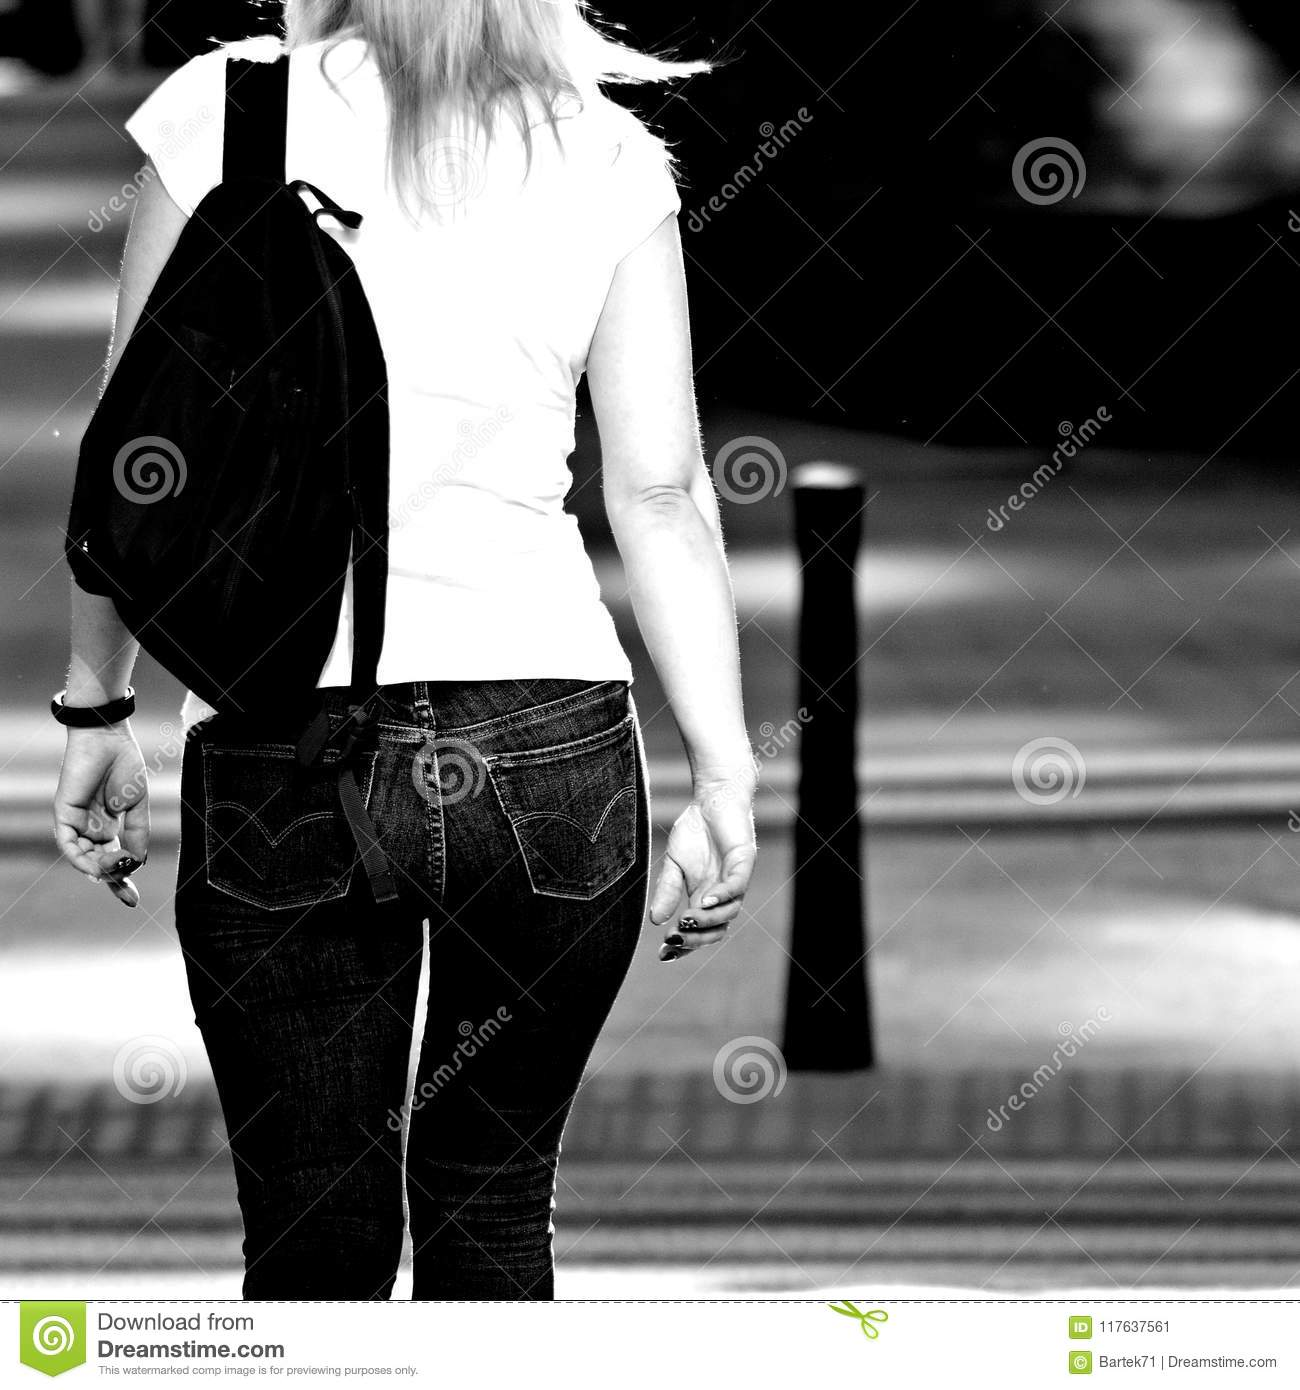 The back view of a girl walking down the street black and white